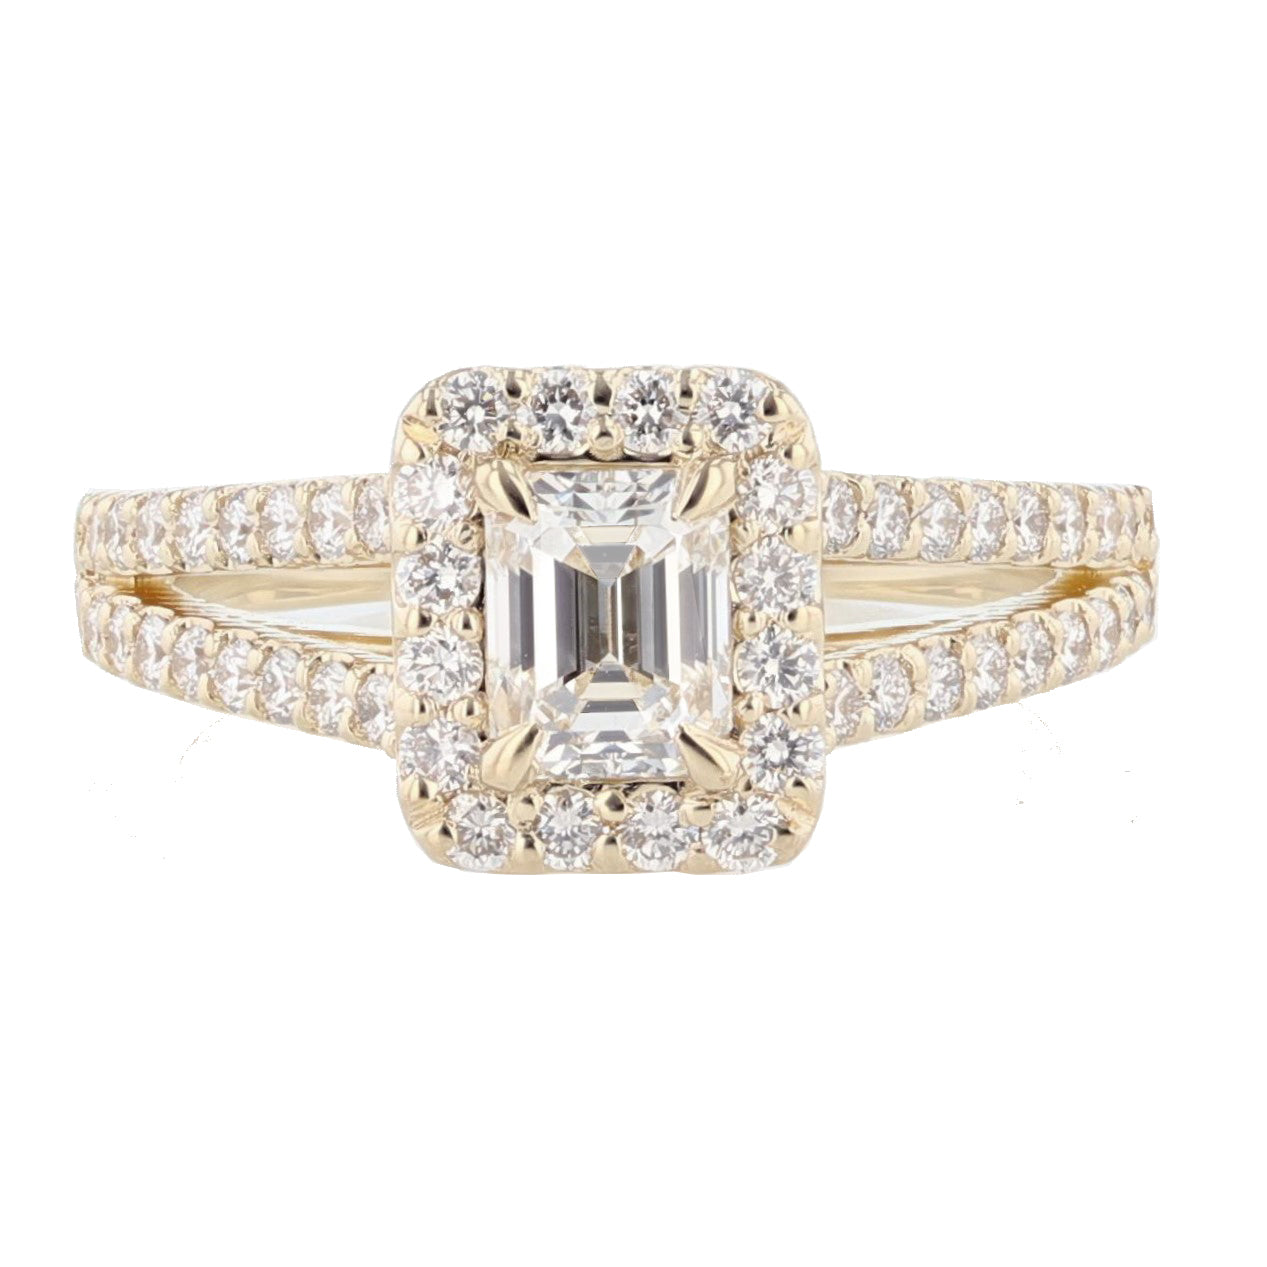 14K Yellow Gold Emerald Cut Diamond Engagement Ring - Nazarelle